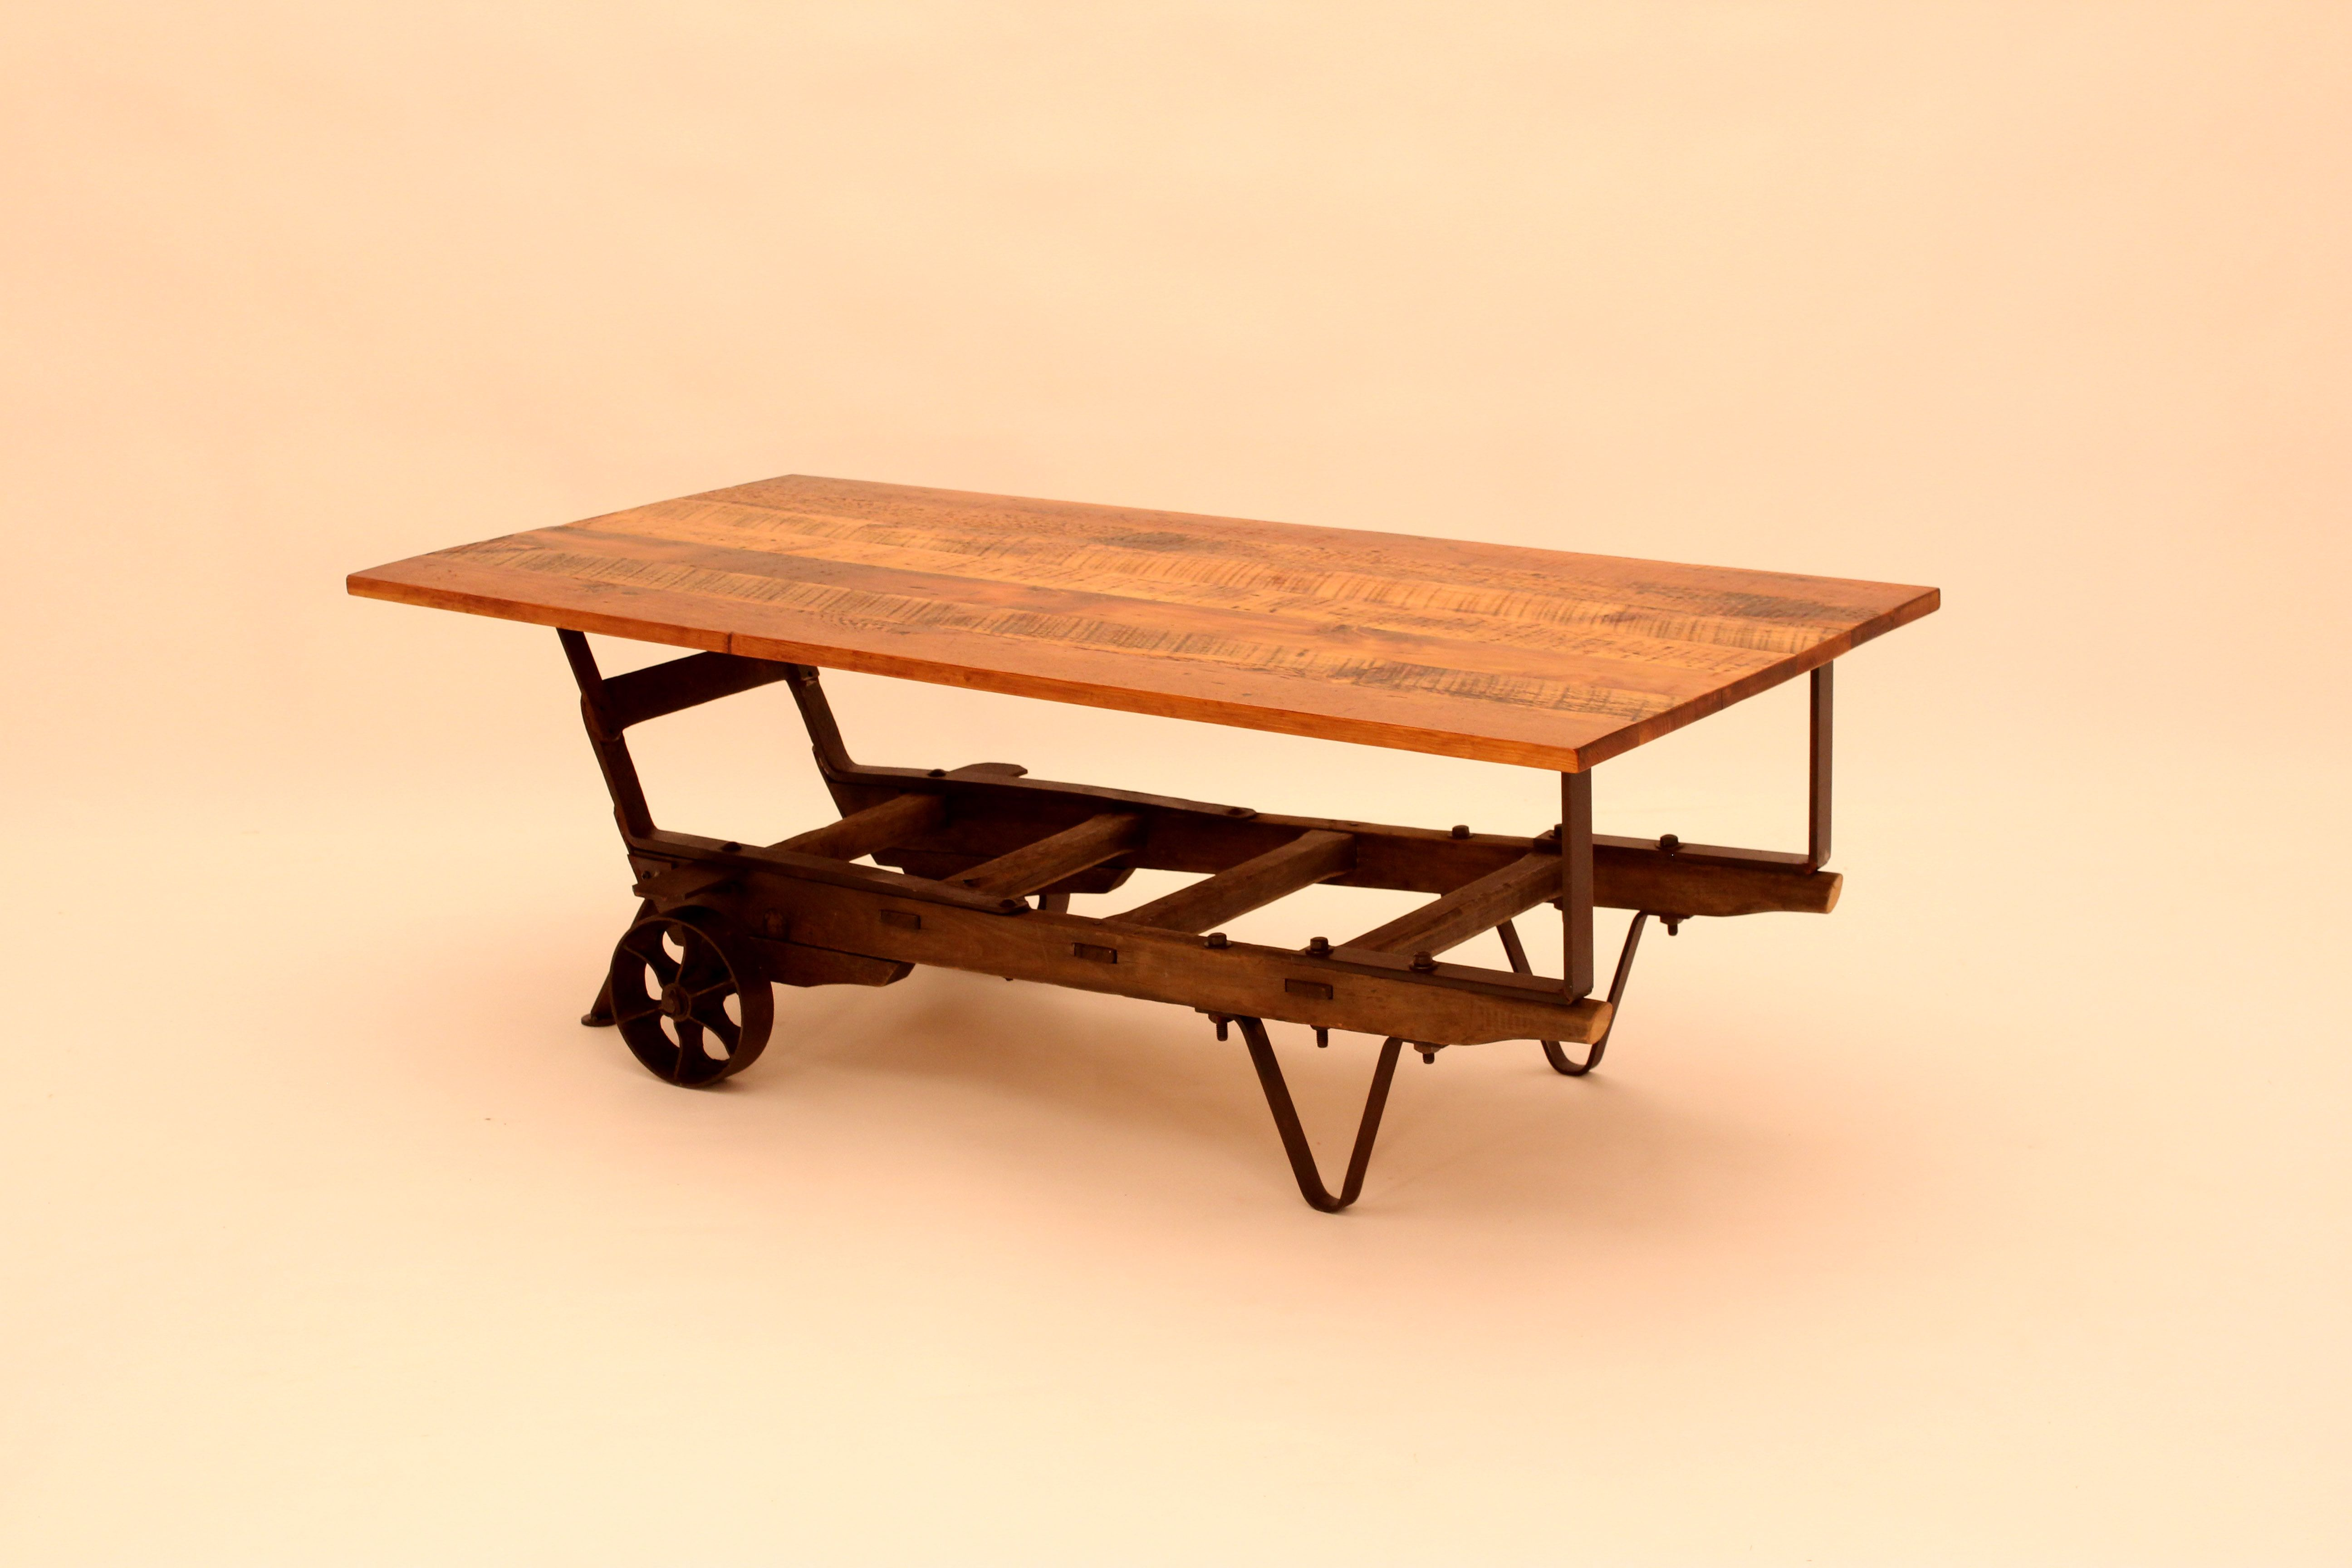 Hand Crafted Ct 37 Hand Truck Base W Antique Pine Top